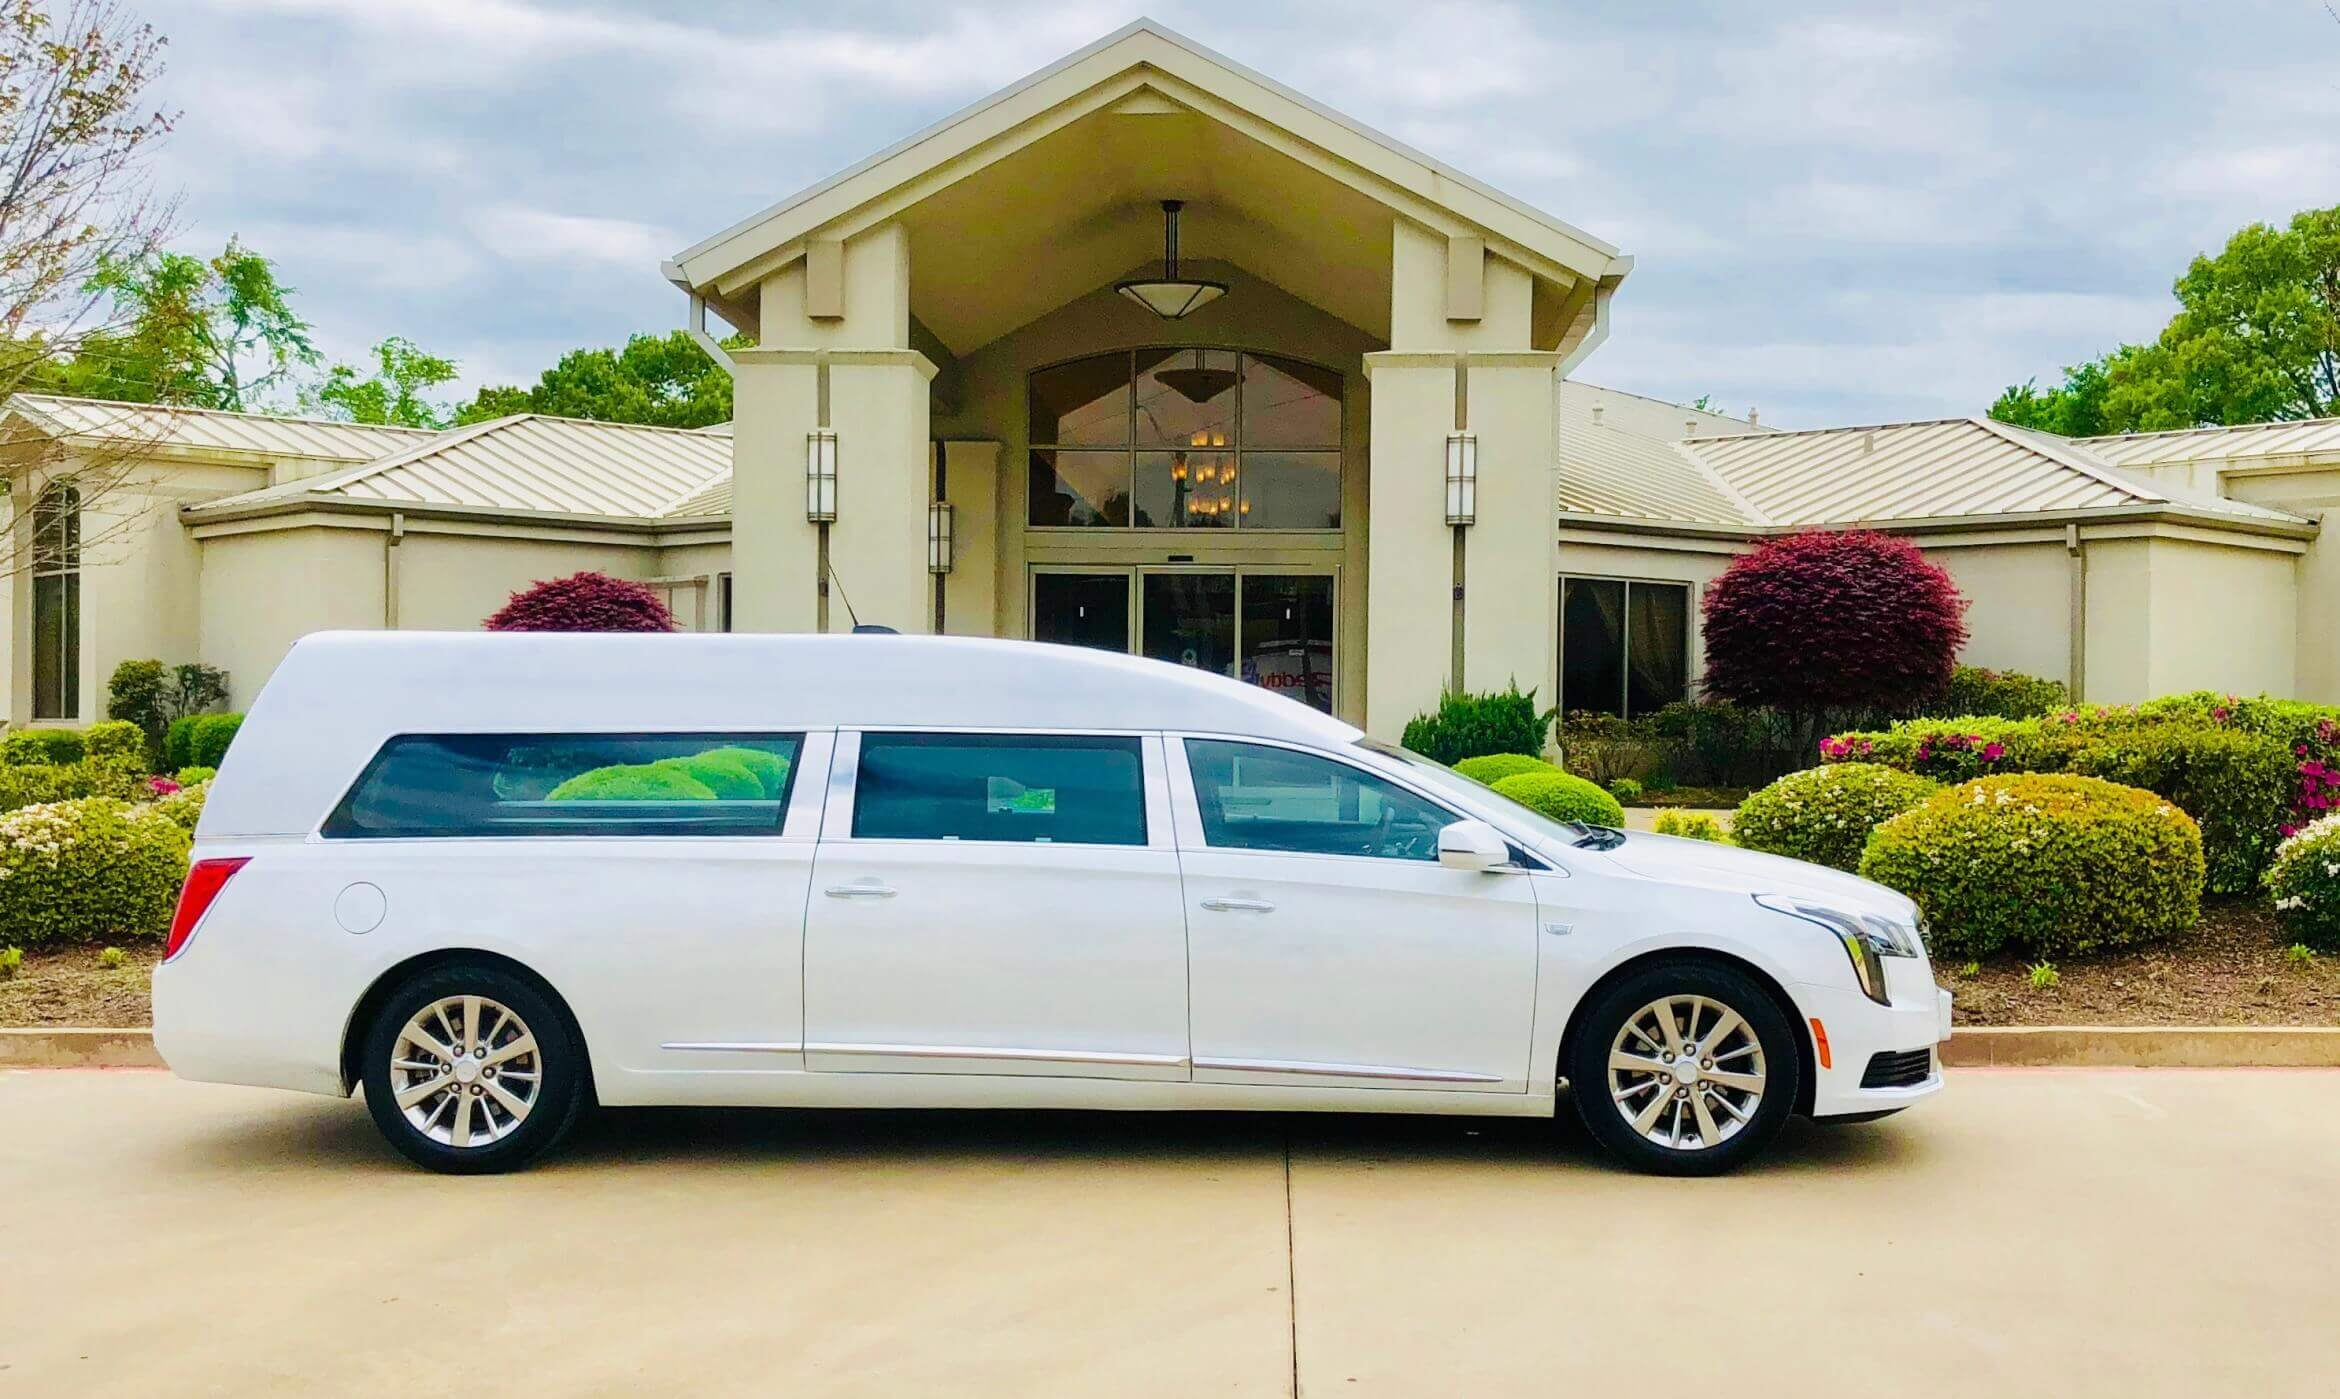 Funeral Home And Cremation Vehicles File 2